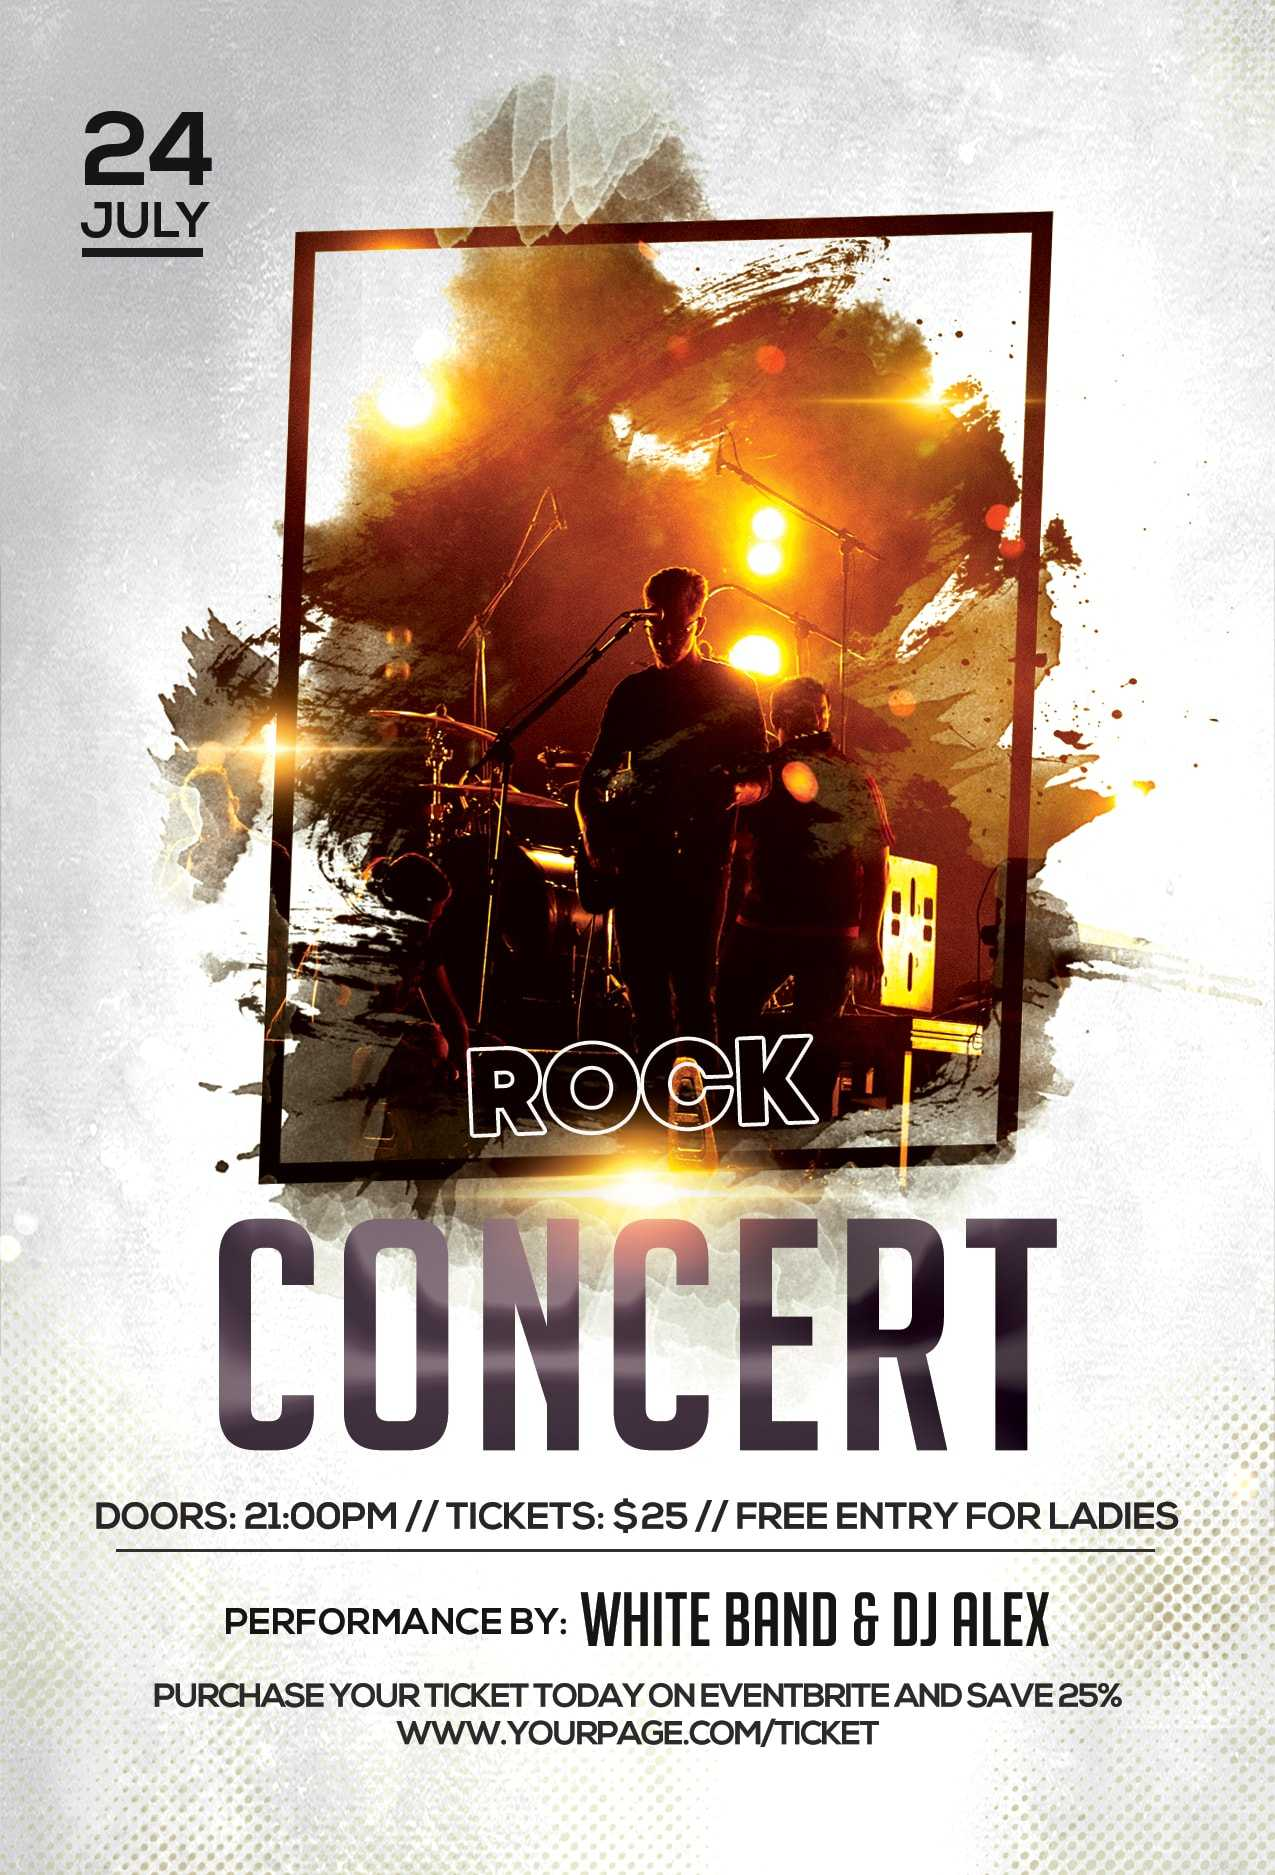 Music Concert Free Psd Flyer Template - Psdflyer.co Regarding Concert Flyer Template Free